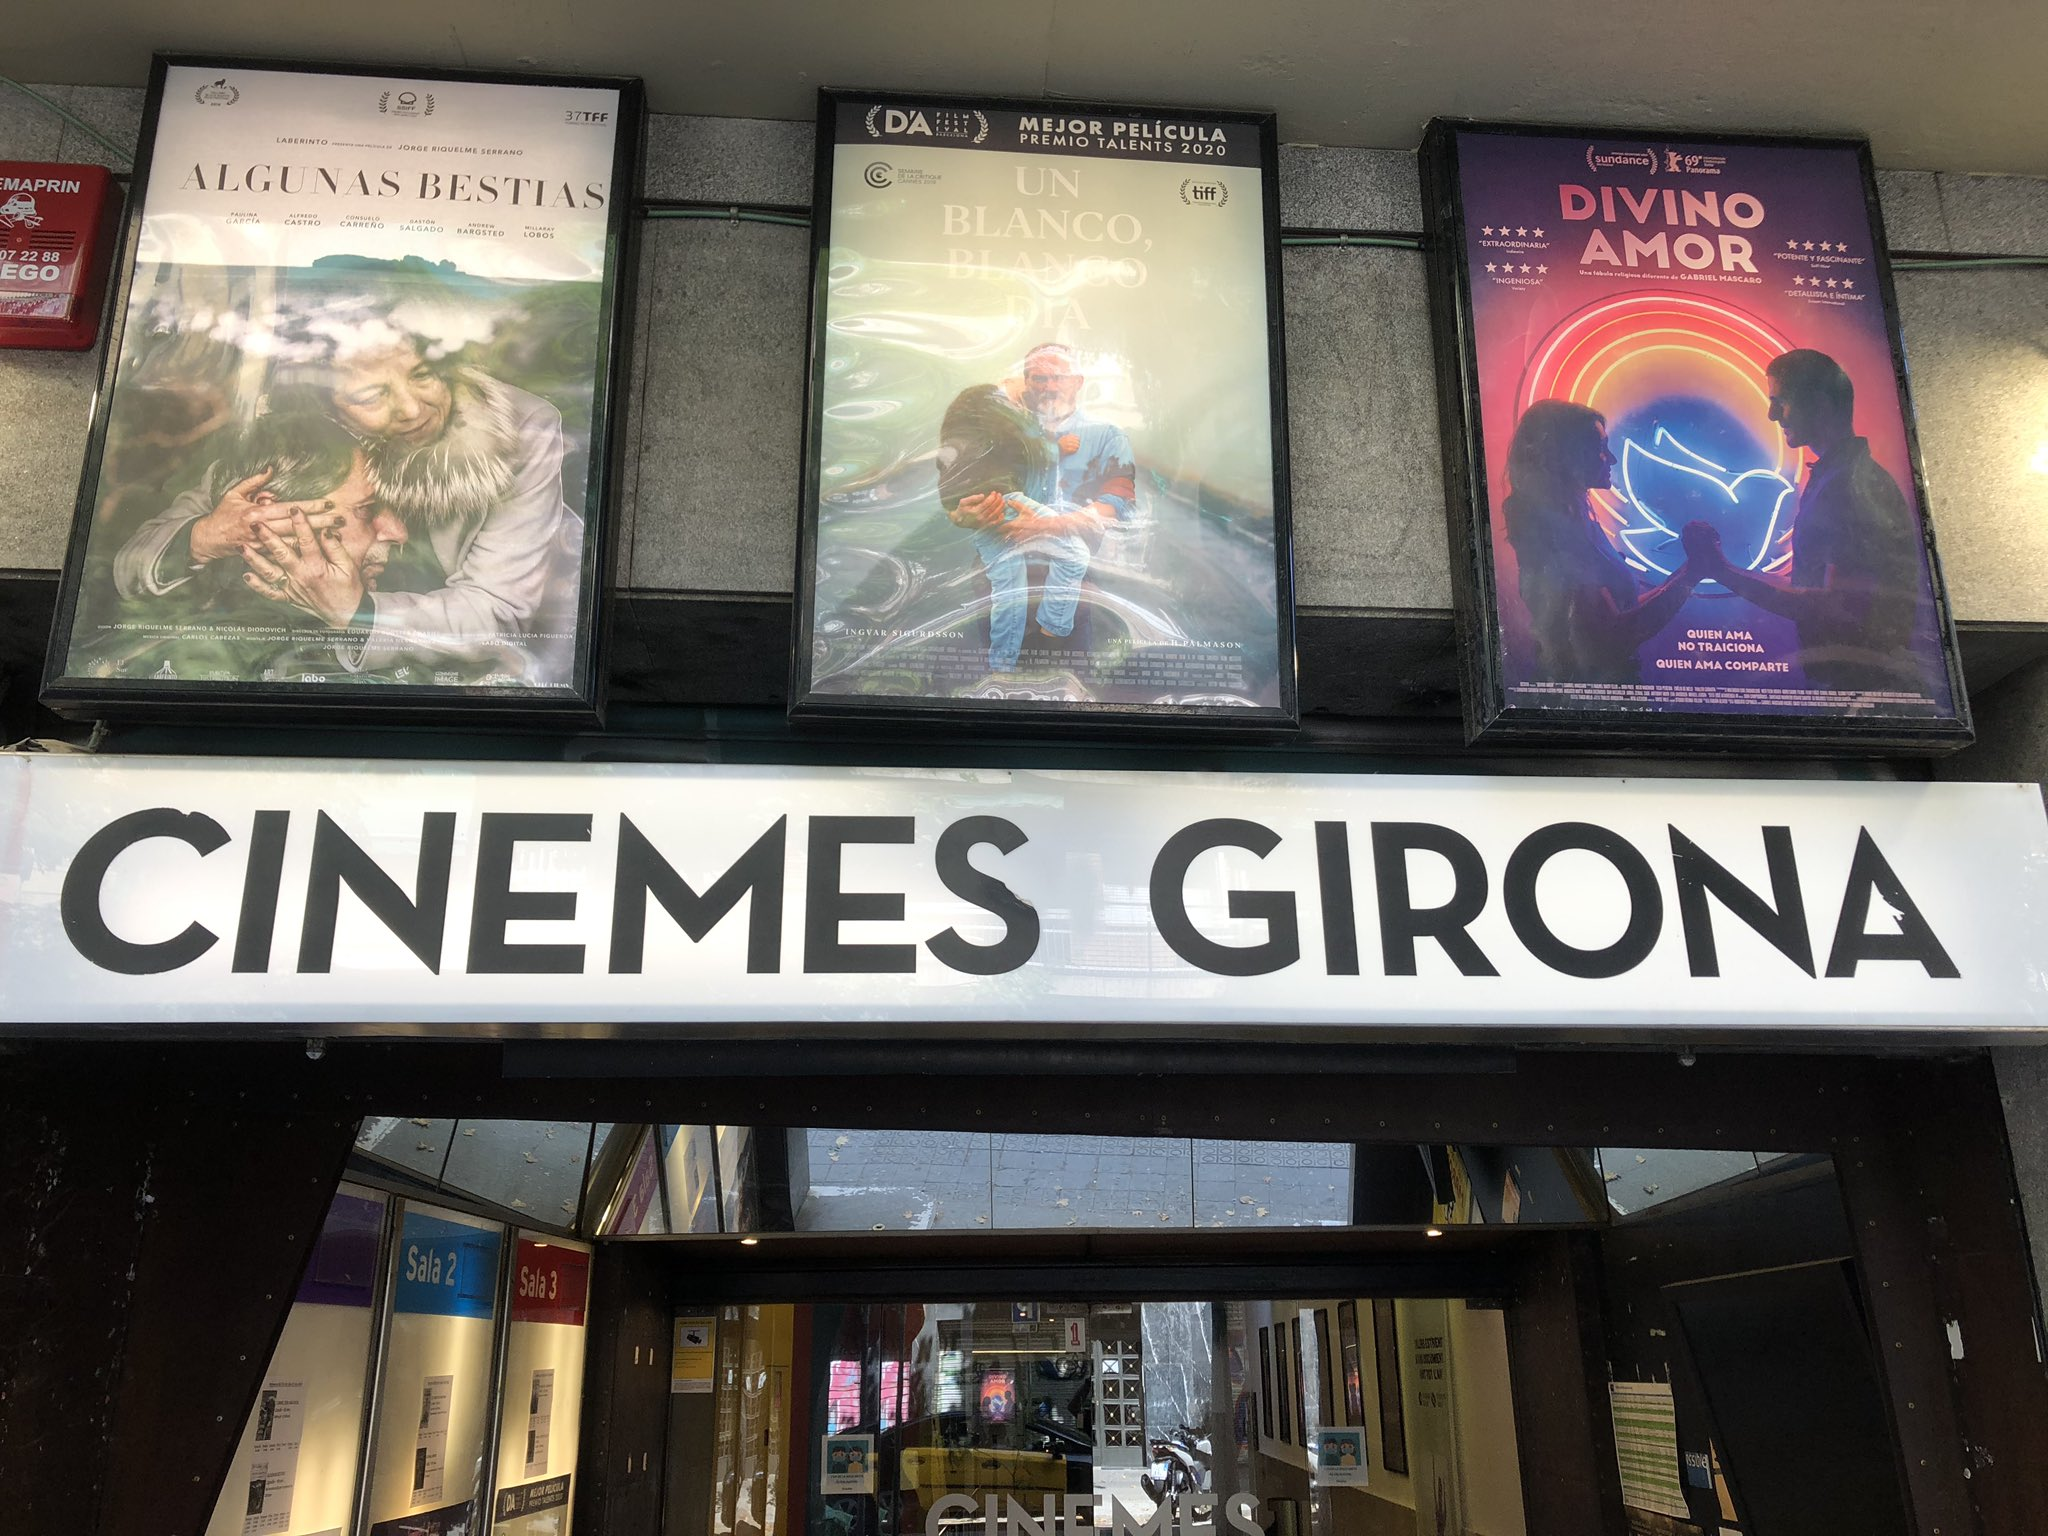 Cinemes Girona tanquen fins finals d'agost / Cinemes Girona